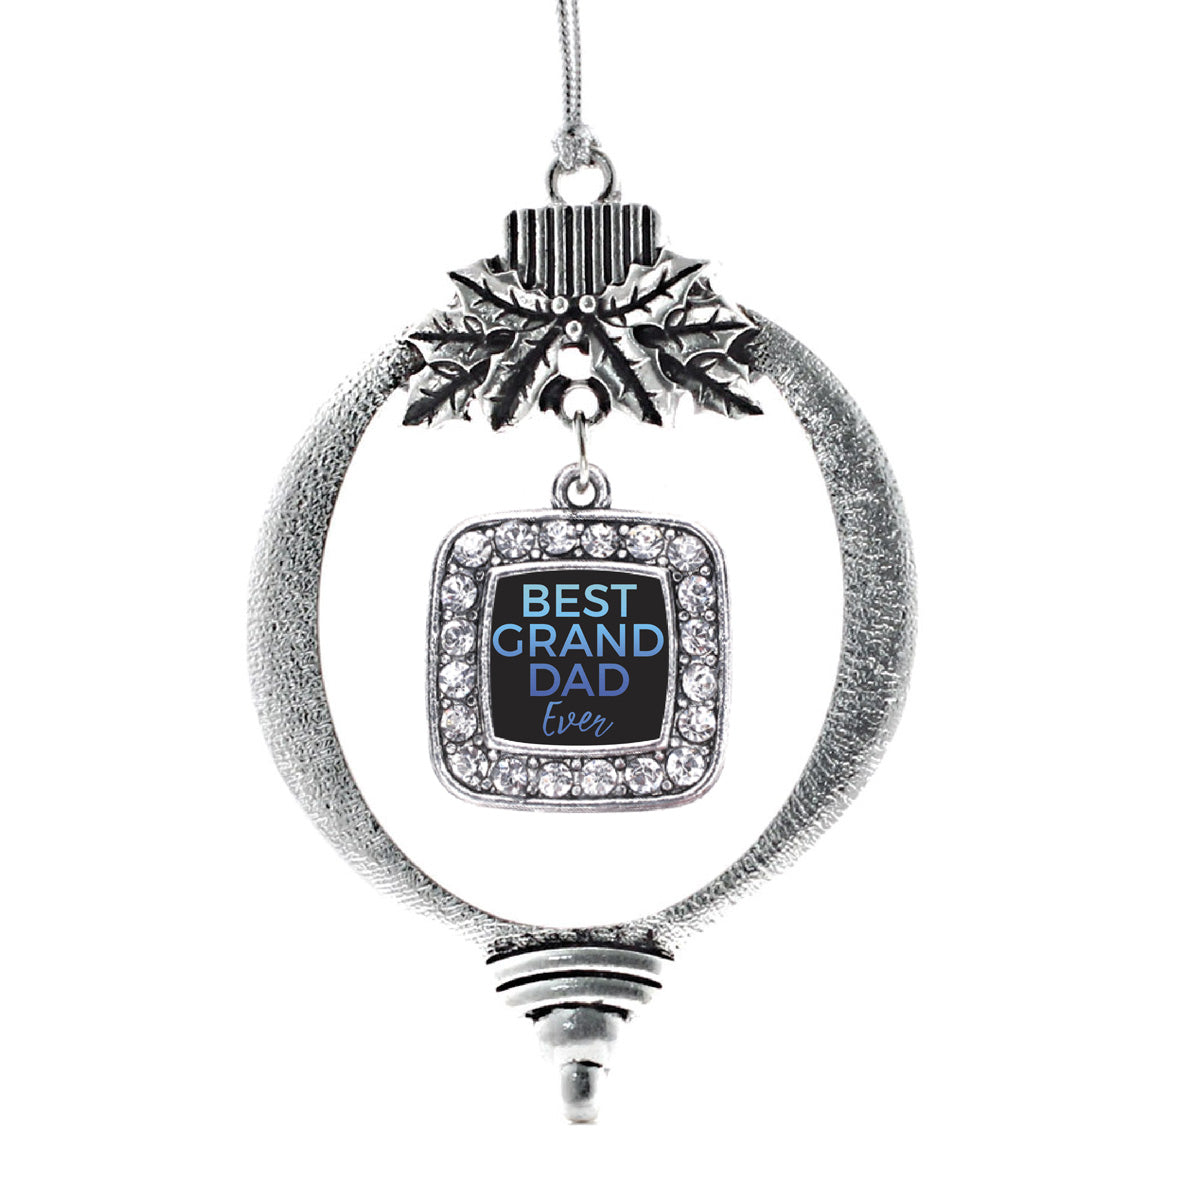 Best Granddad Ever Square Charm Christmas / Holiday Ornament